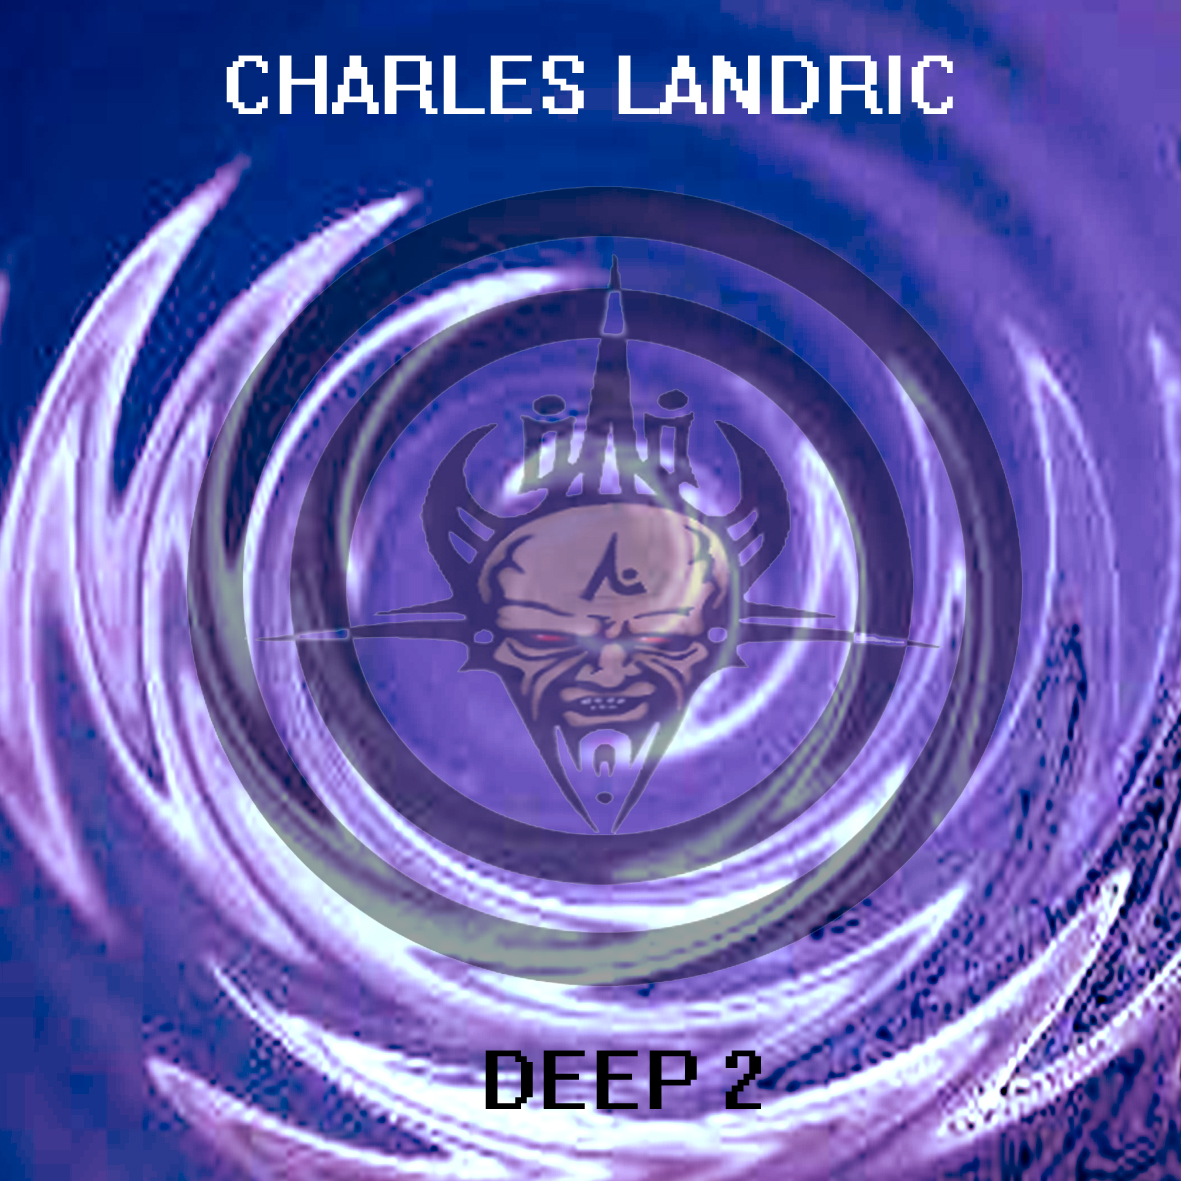 MP3CCREATDF002 - CORE CREATOR DIGIFILES - CHARLES LANDRIC - Deep 02